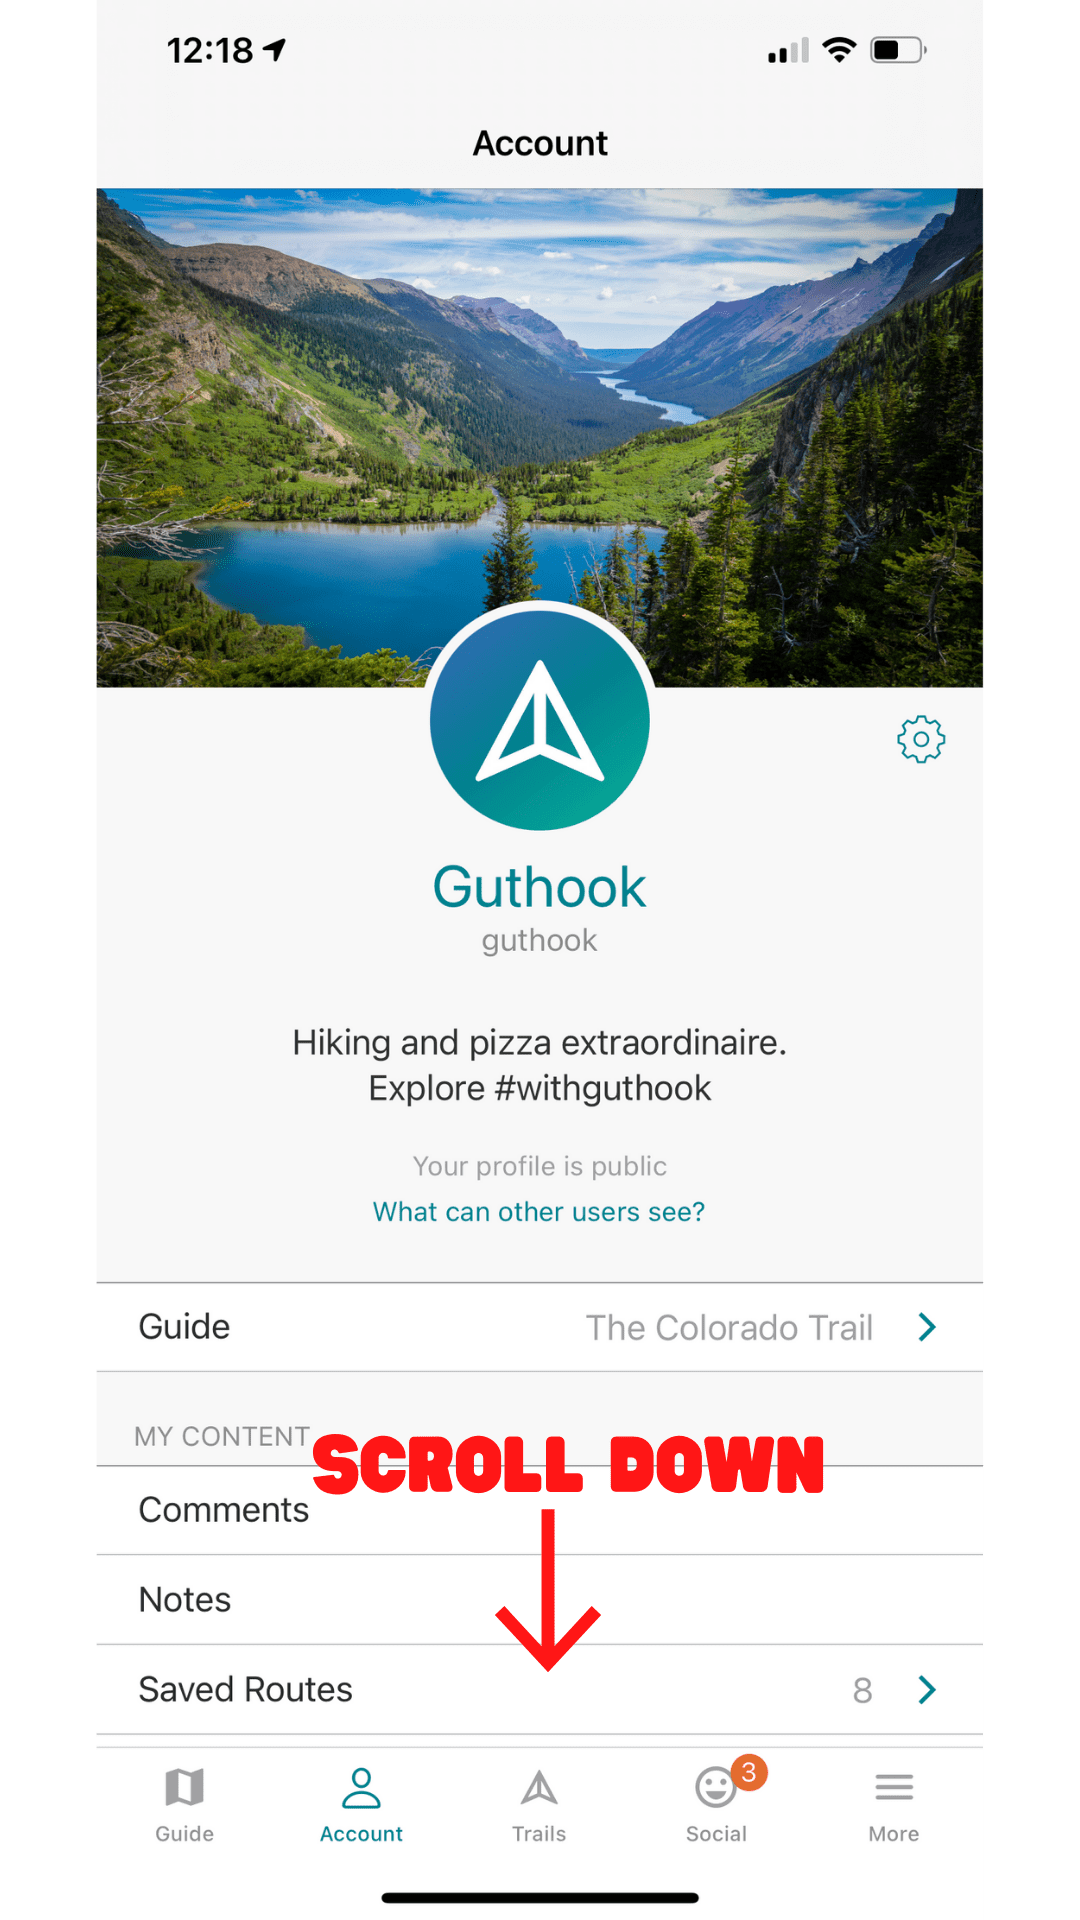 a screen shot of the Guthook Guides app